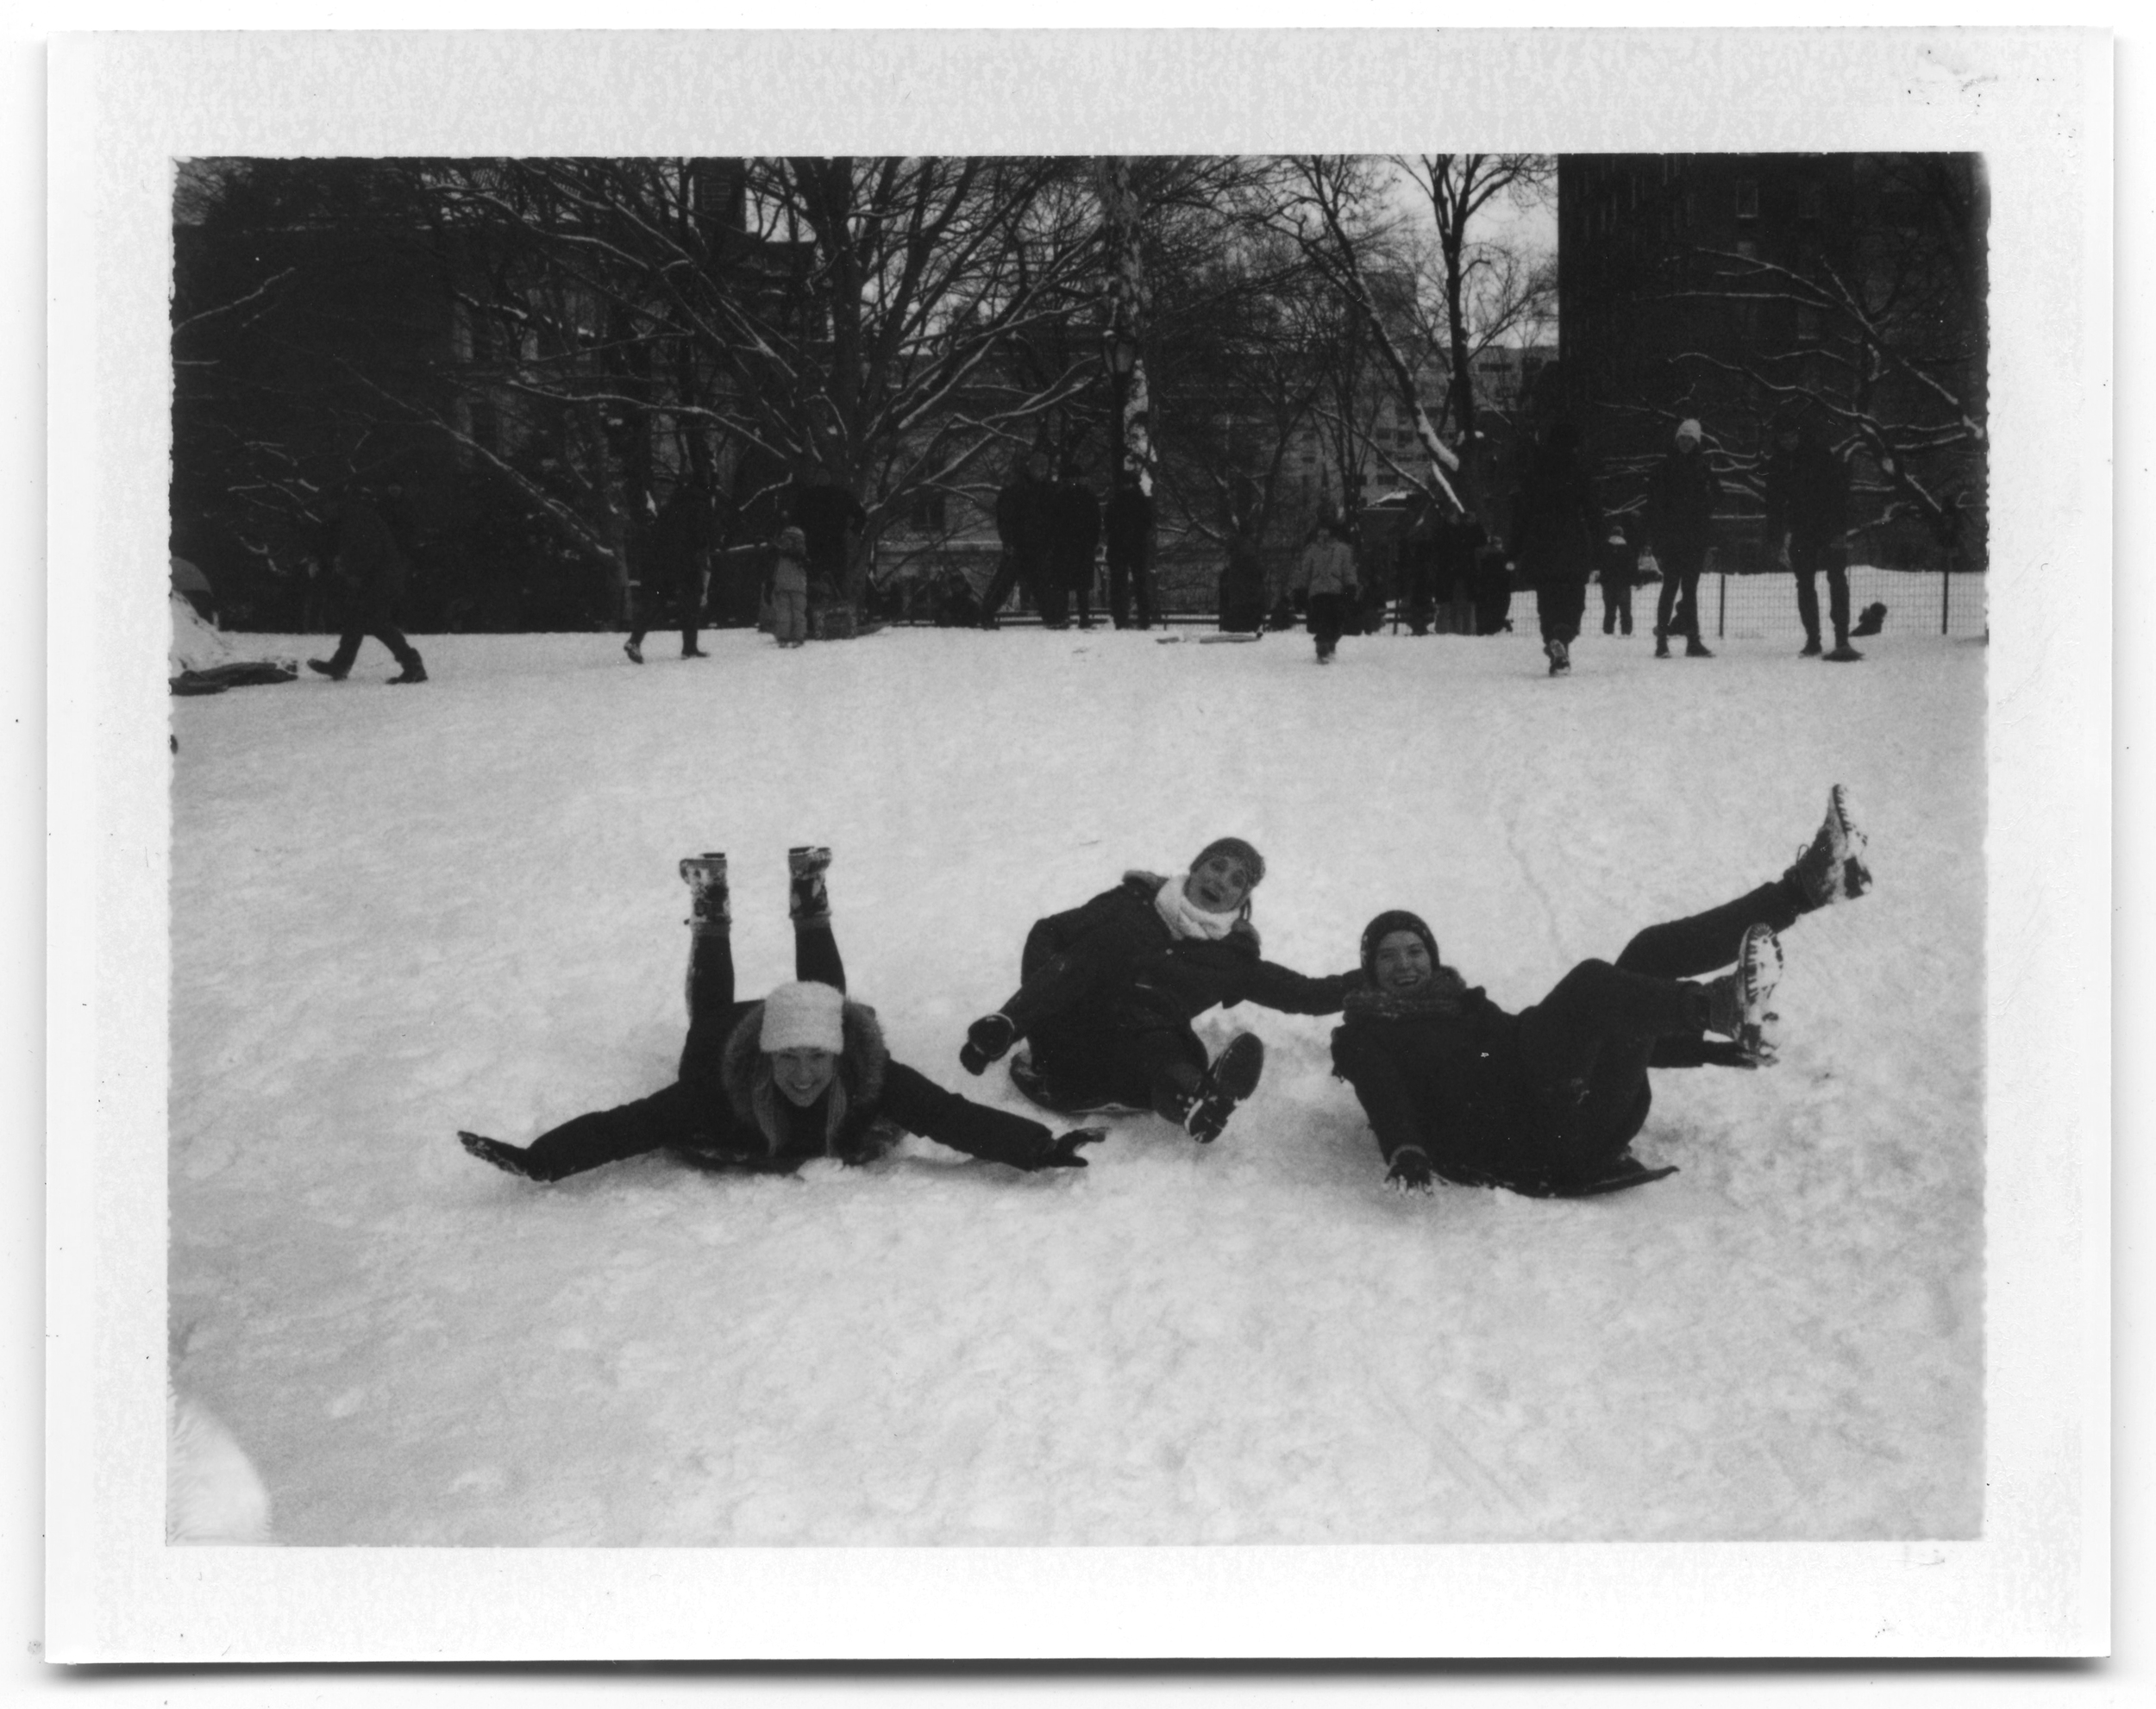 Polaroid Land 250. Fujifilm FP-3000b. January 2015